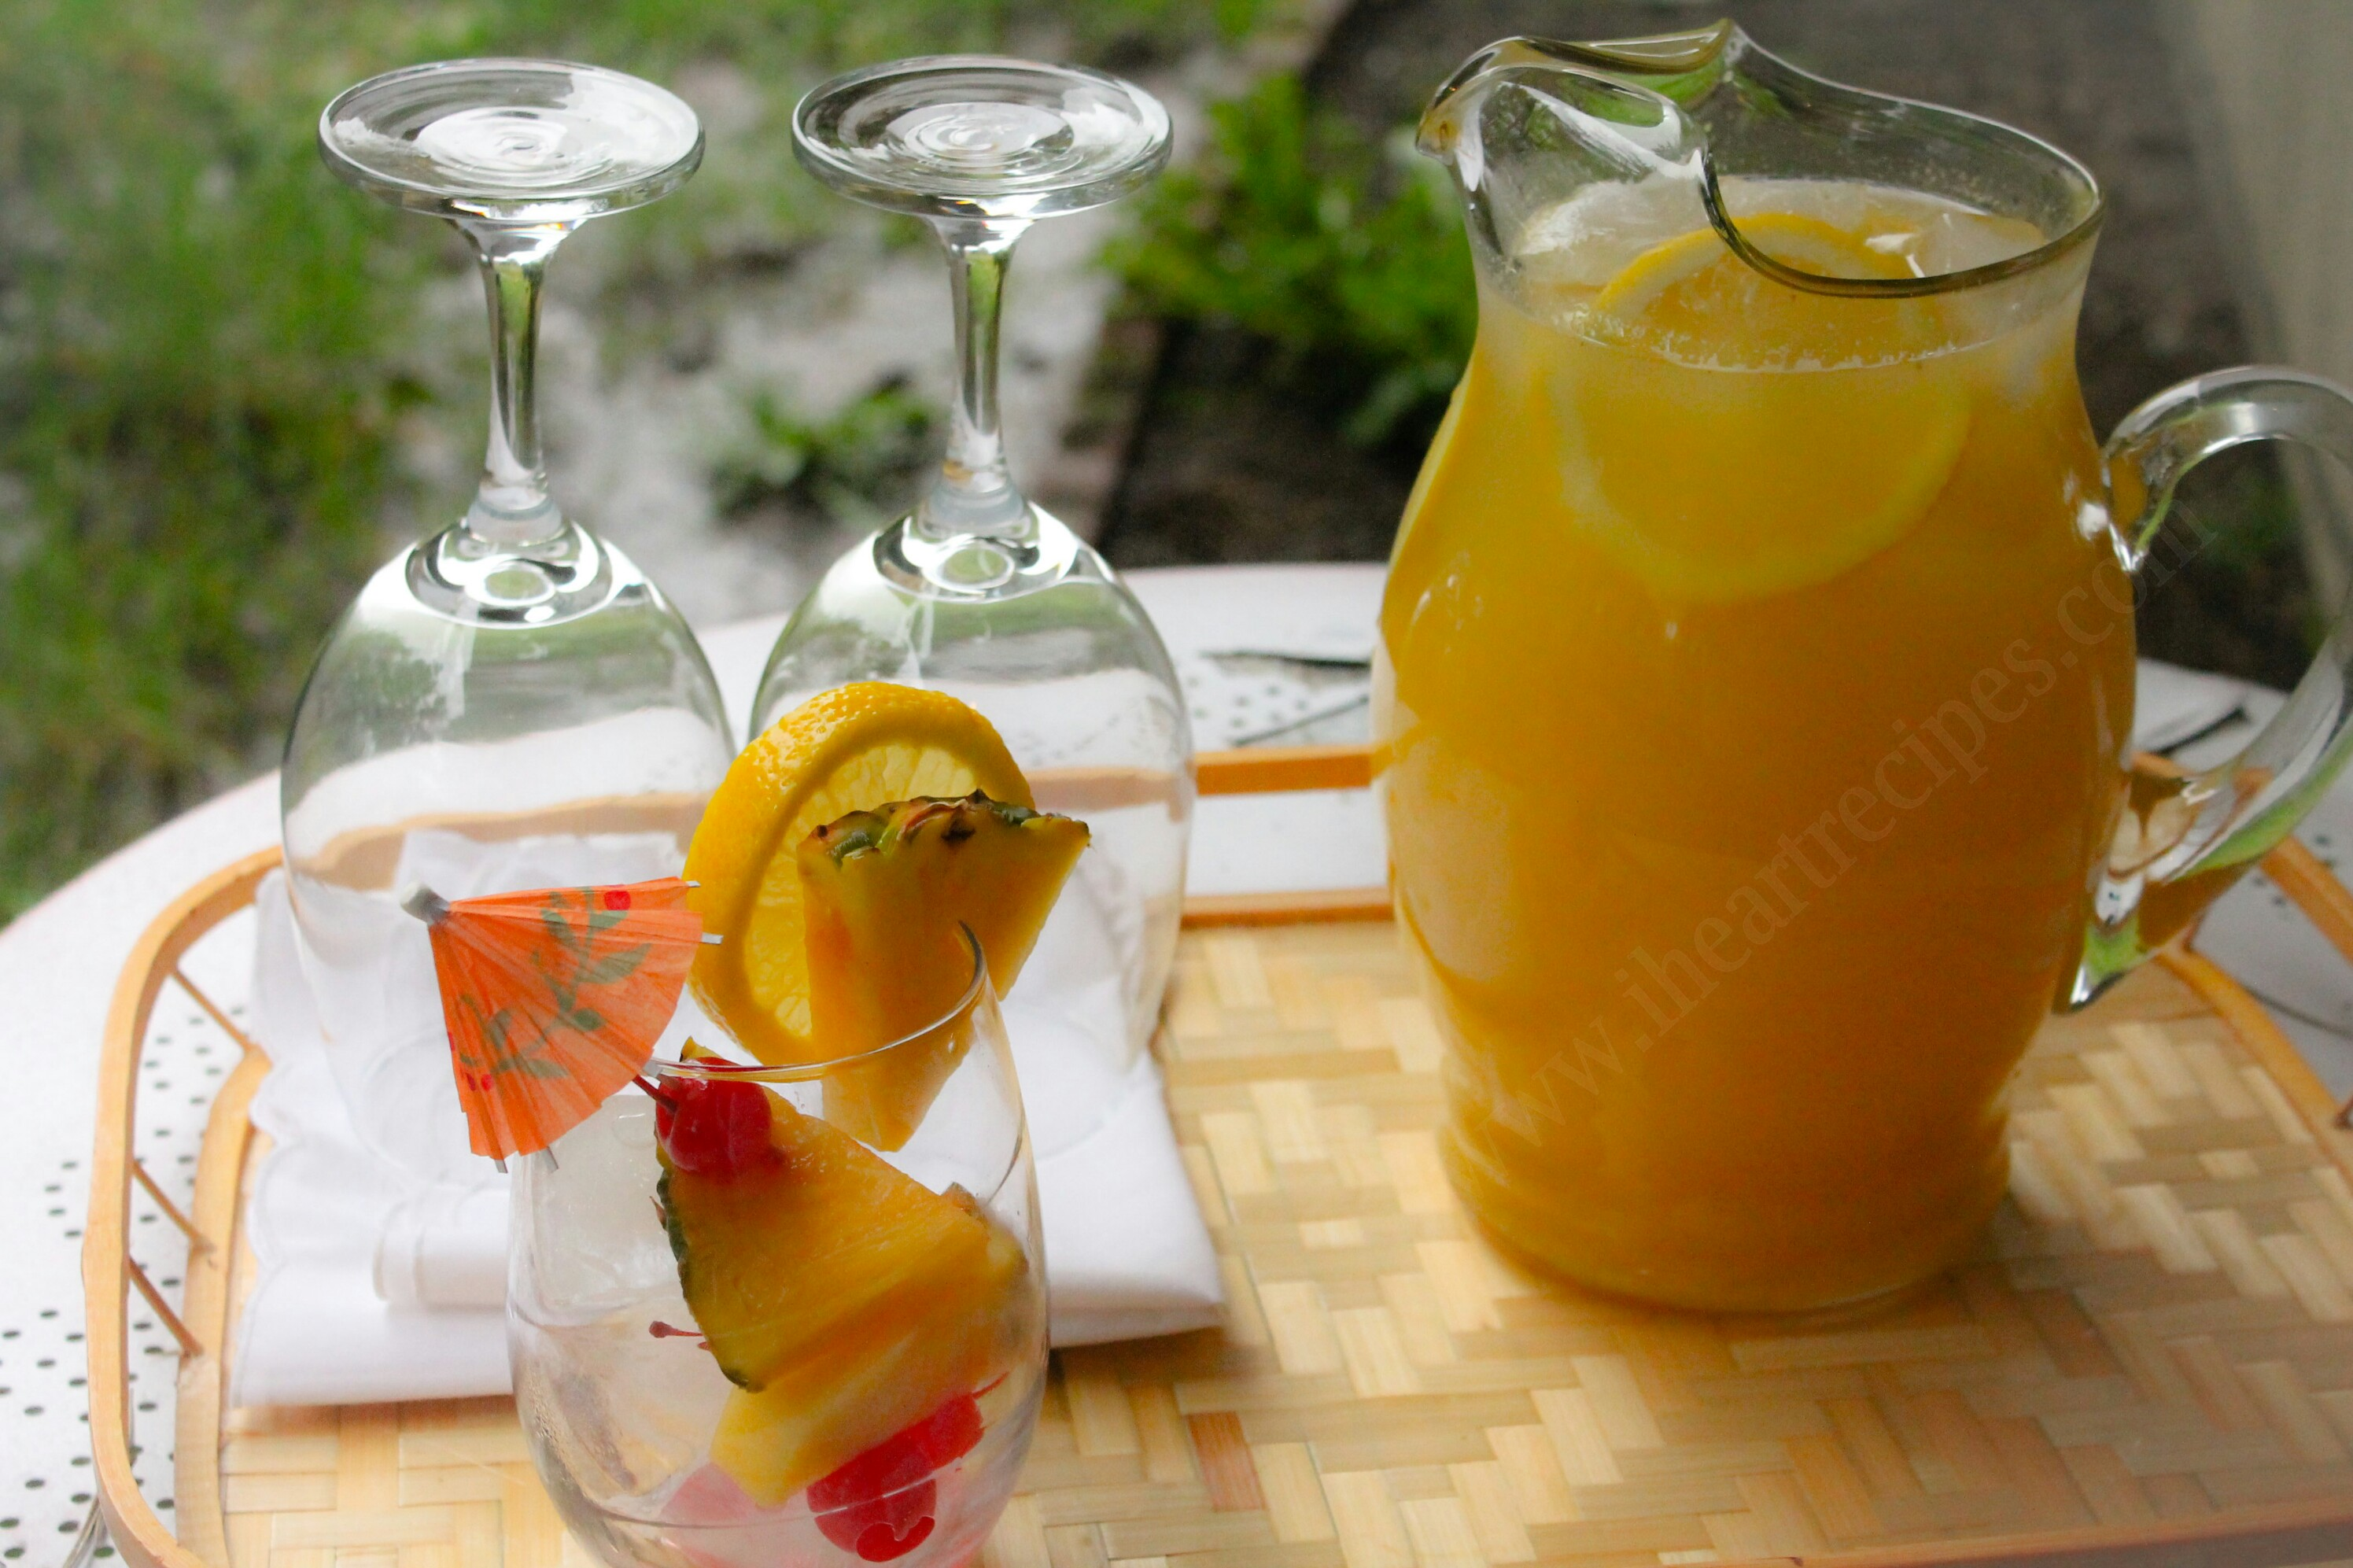 Fresh Homemade Mango Pineapple Lemonade | I Heart Recipes